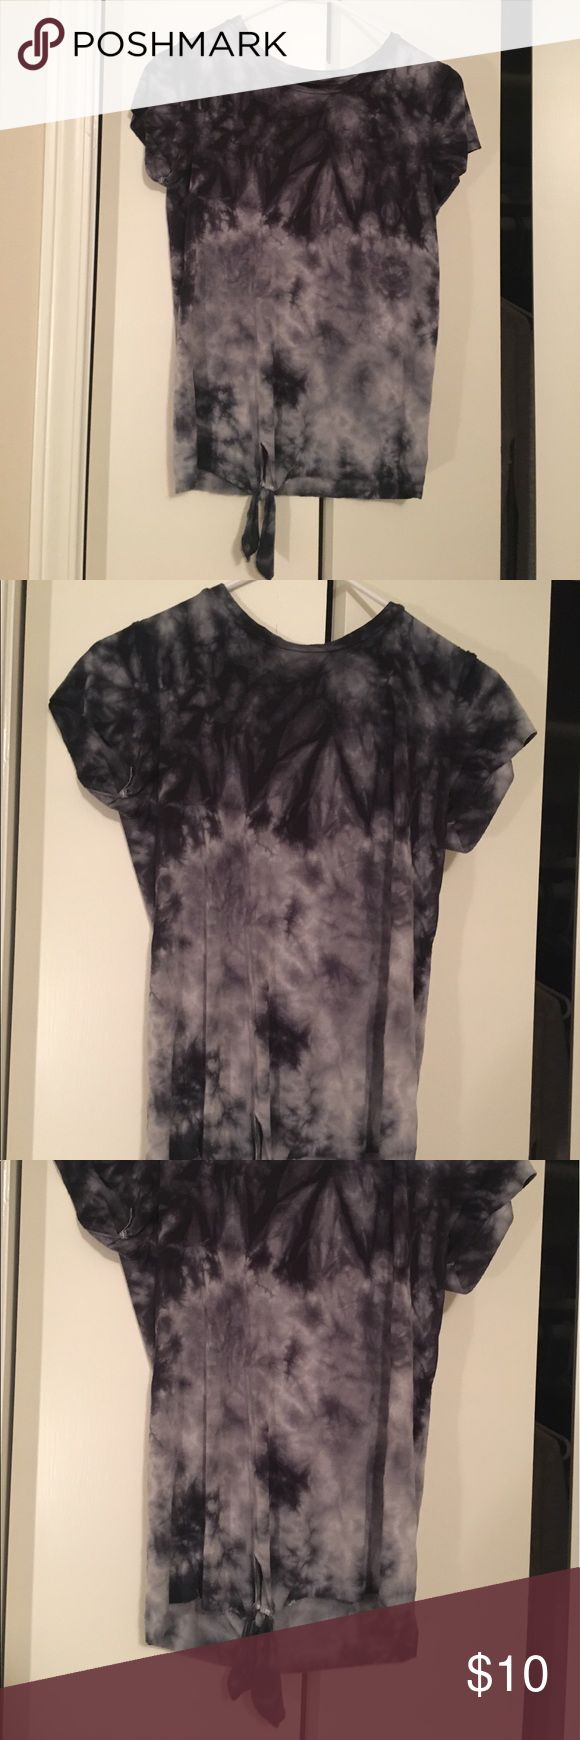 American Eagle Navy Tie Dye T Shirt American Eagle Navy Tie Dye T Shirt! Worn once and is in perfect condition. The material of this shirt is extremely soft and comfortable! You can pair it with leggings or jeans and it looks great! American Eagle Outfitters Tops Tees - Short Sleeve